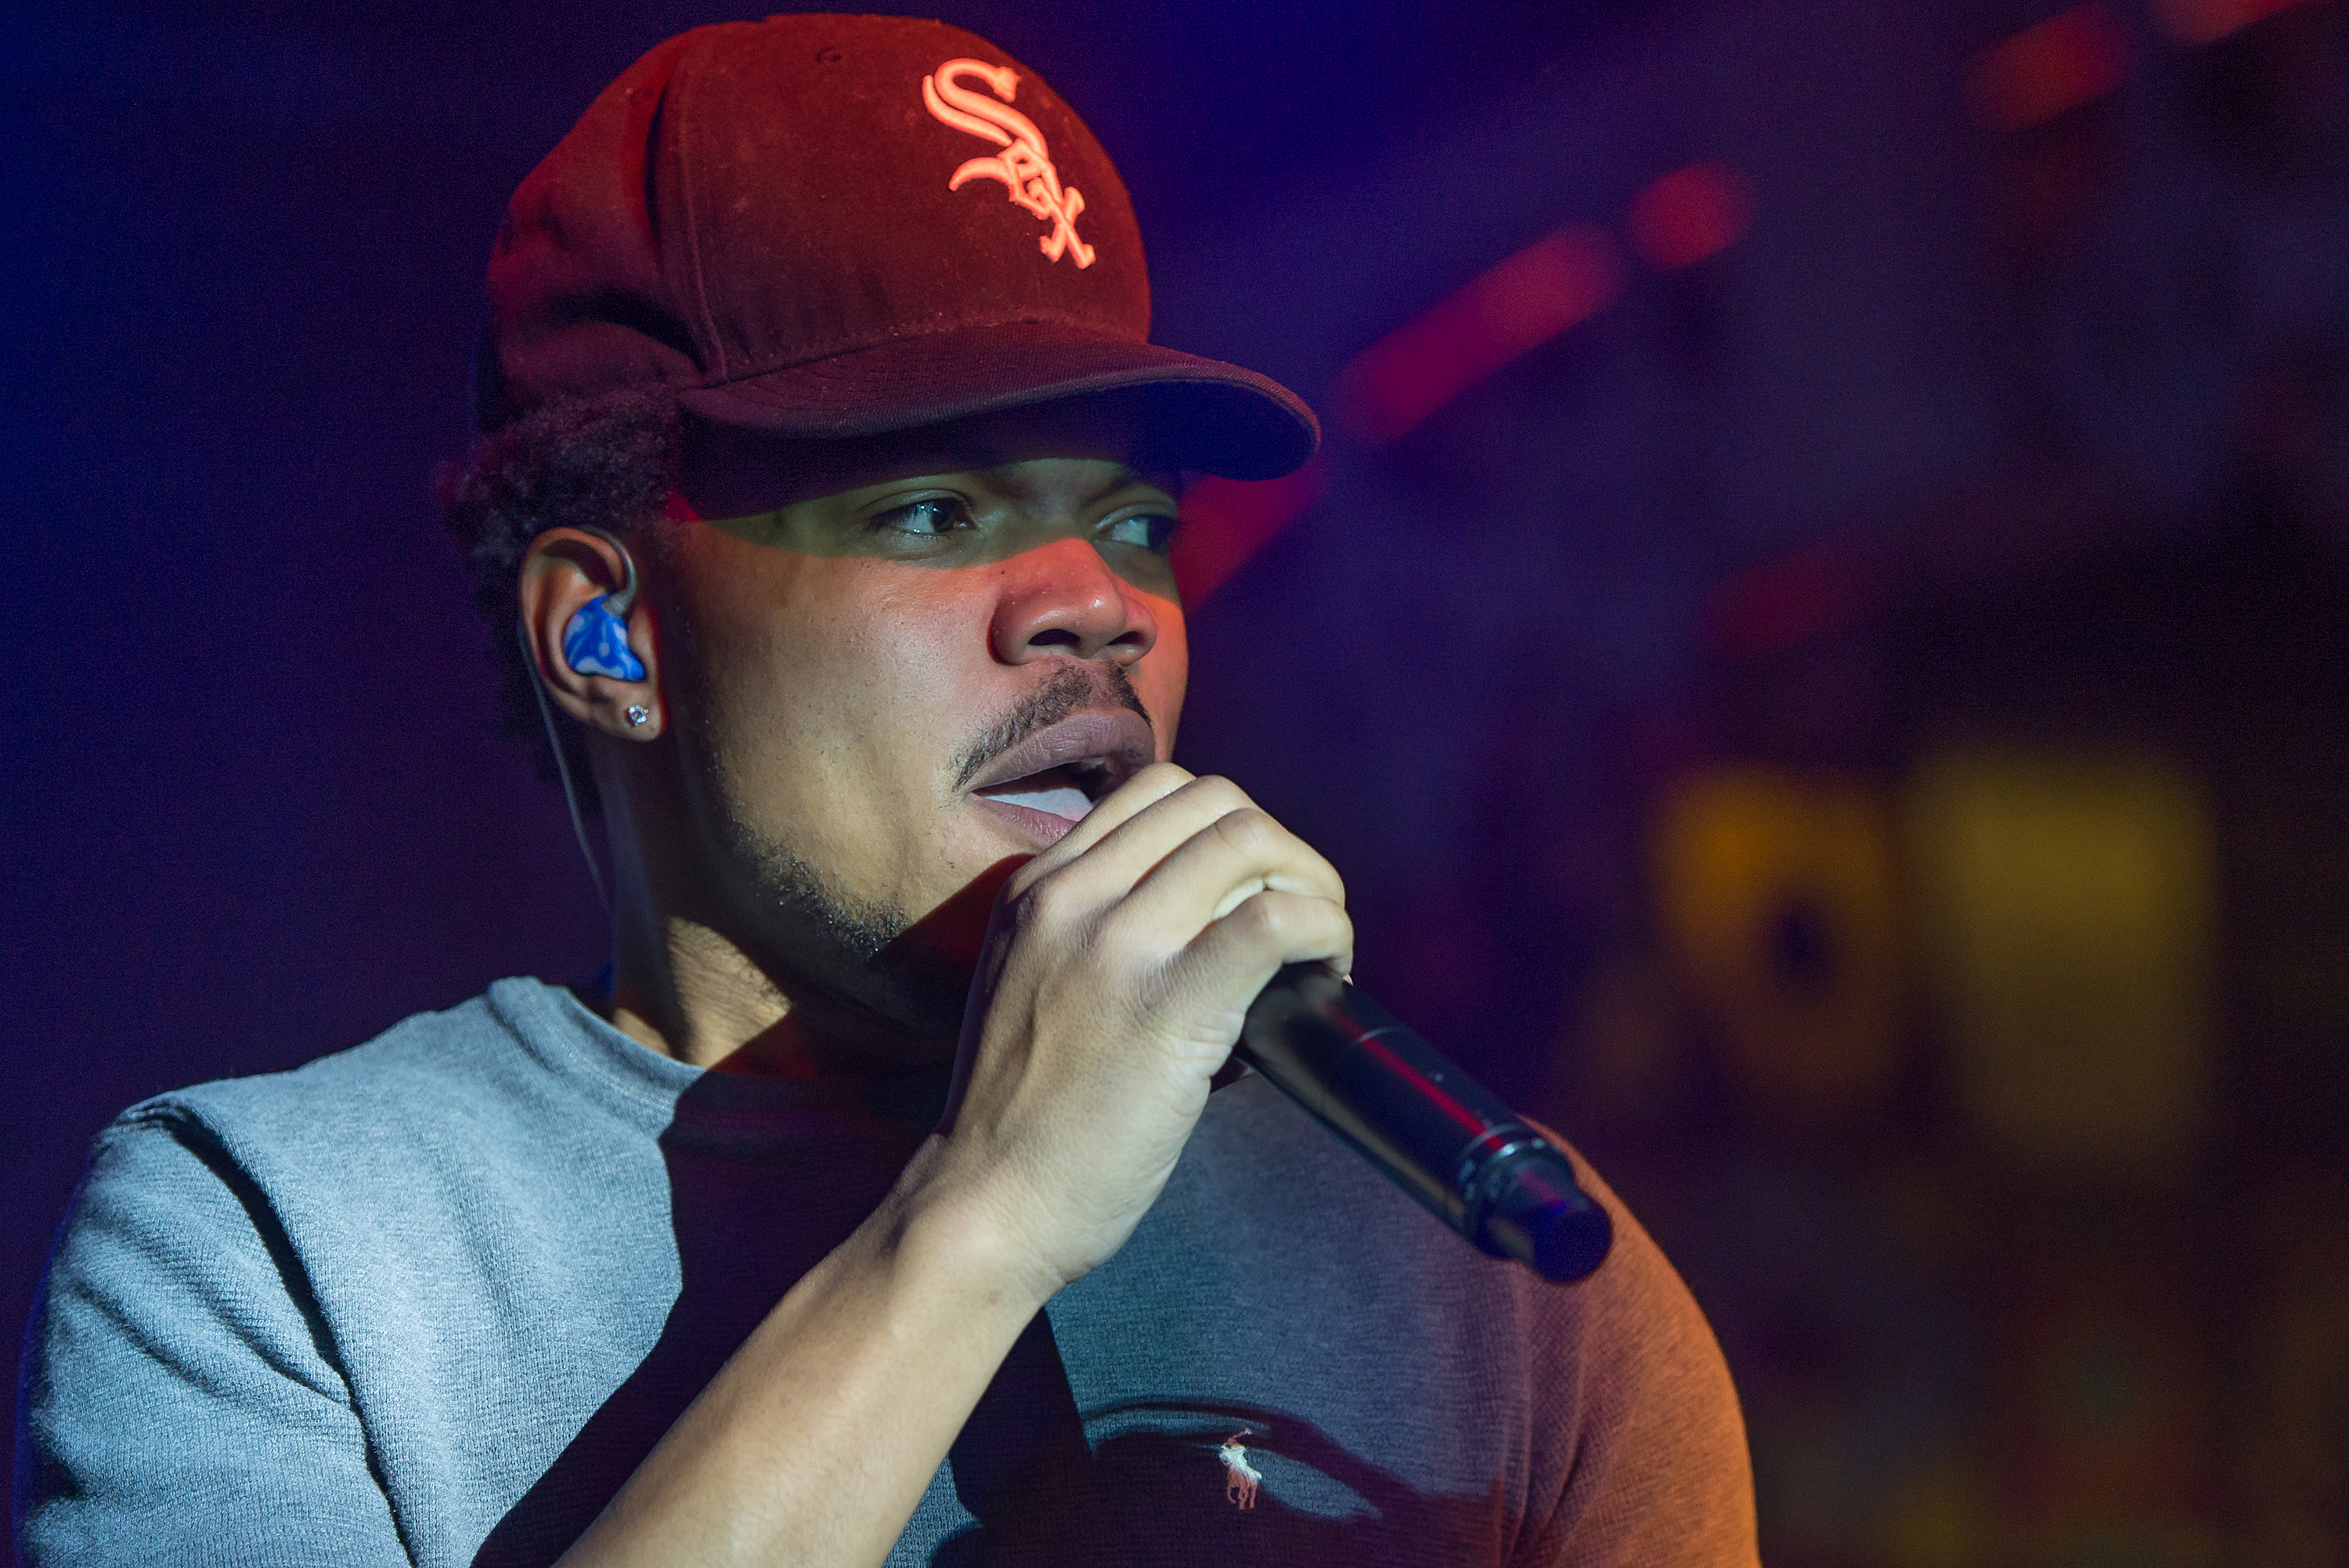 Hip-hop artist Chance The Rapper performs during the SoundCloud Go Launch at Flash Factory on March 31, 2016 in New York City.